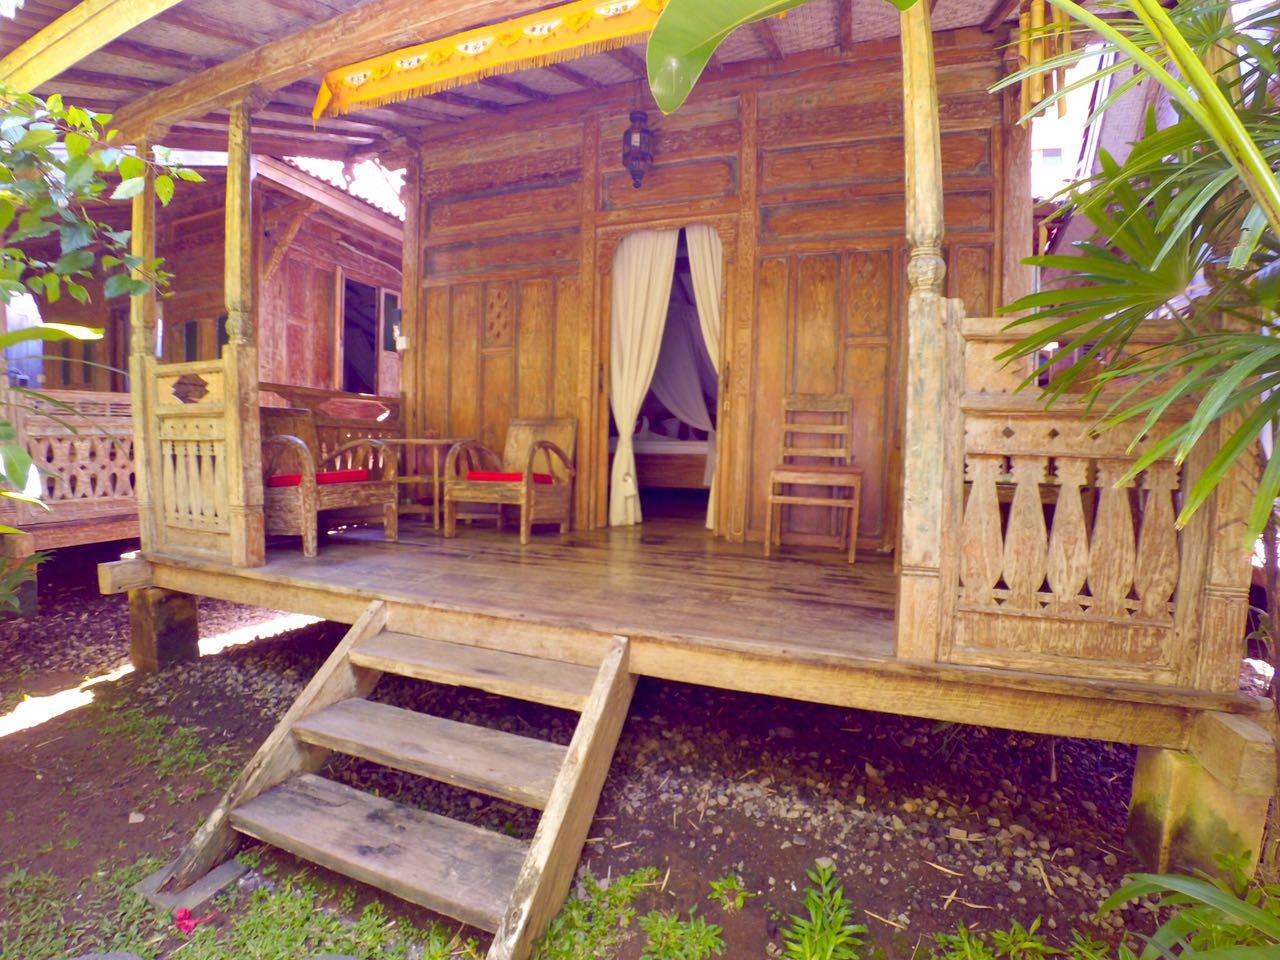 Hotels Review: Soputan Wooden House 3 – Room Rates, Photos and Deals